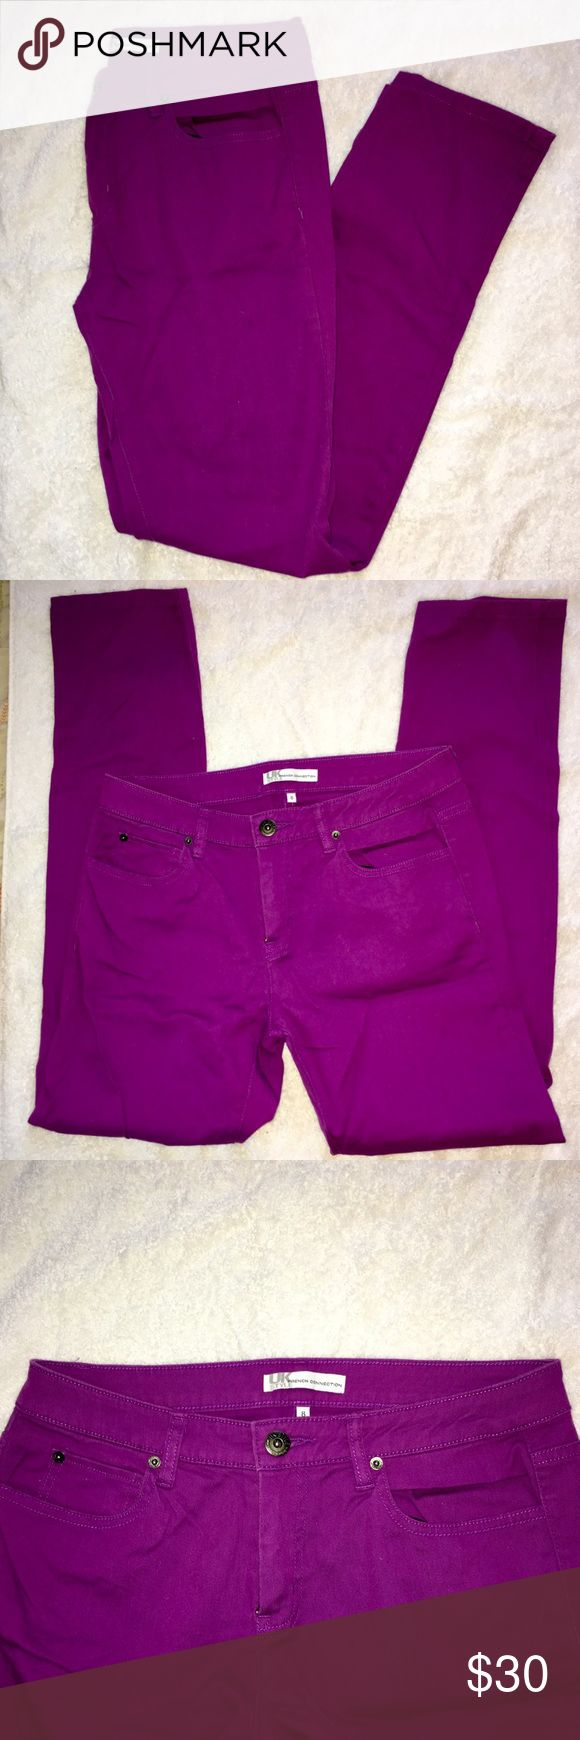 """French Connection UK Style Jeans French Connection UK Style jeans in """"electric purple"""". Straight leg. Size 8. Inseam 29 inches. 98% cotton, 2% spandex. French Connection Jeans"""